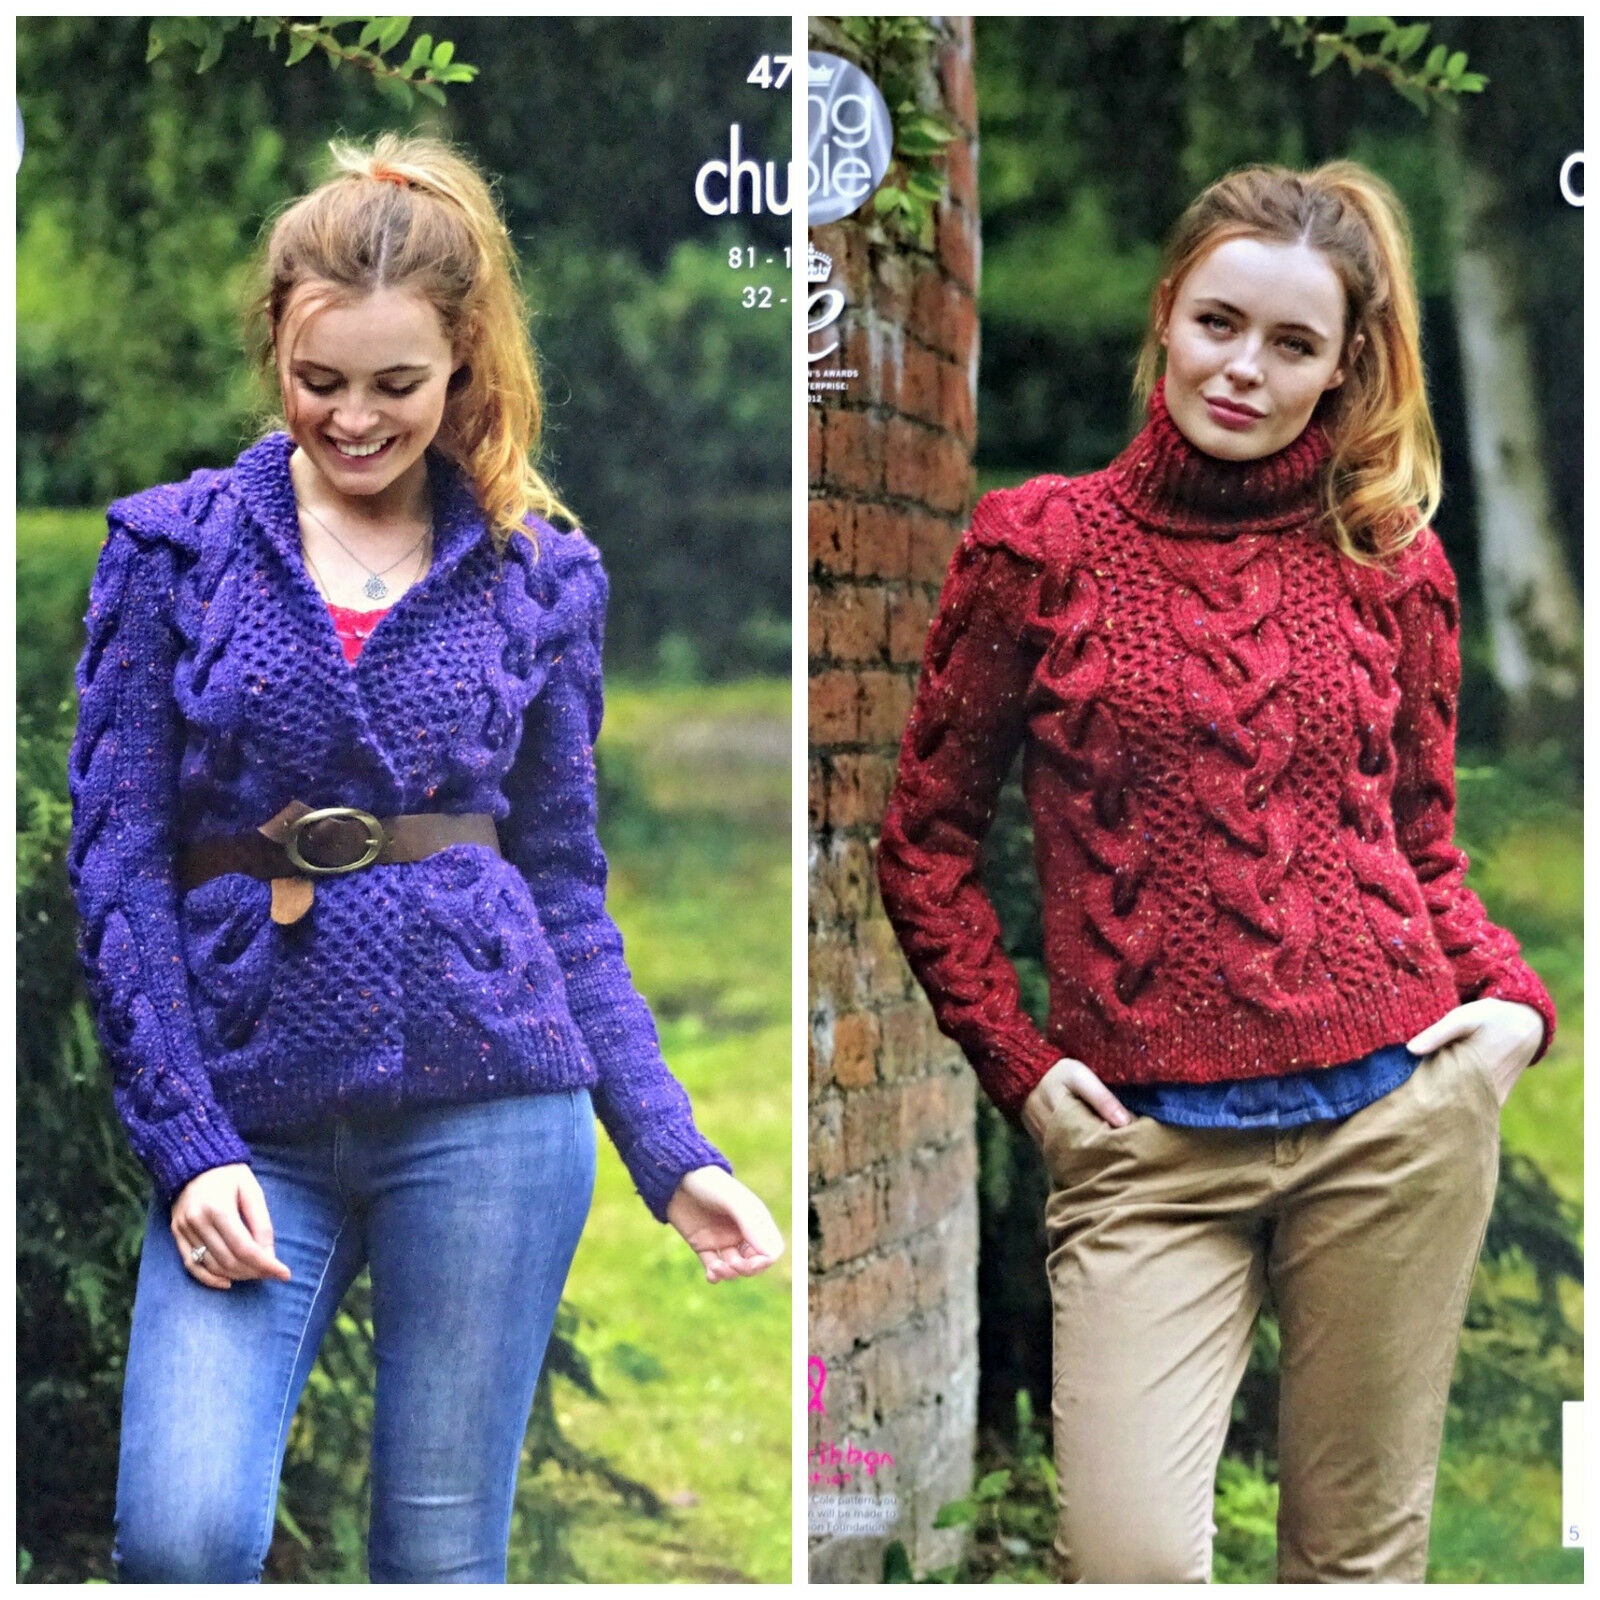 Knitting Patterns For Larger Ladies : KNITTING PATTERN Ladies Large Cable Jacket & Jumper Chunky 4744 King Cole...